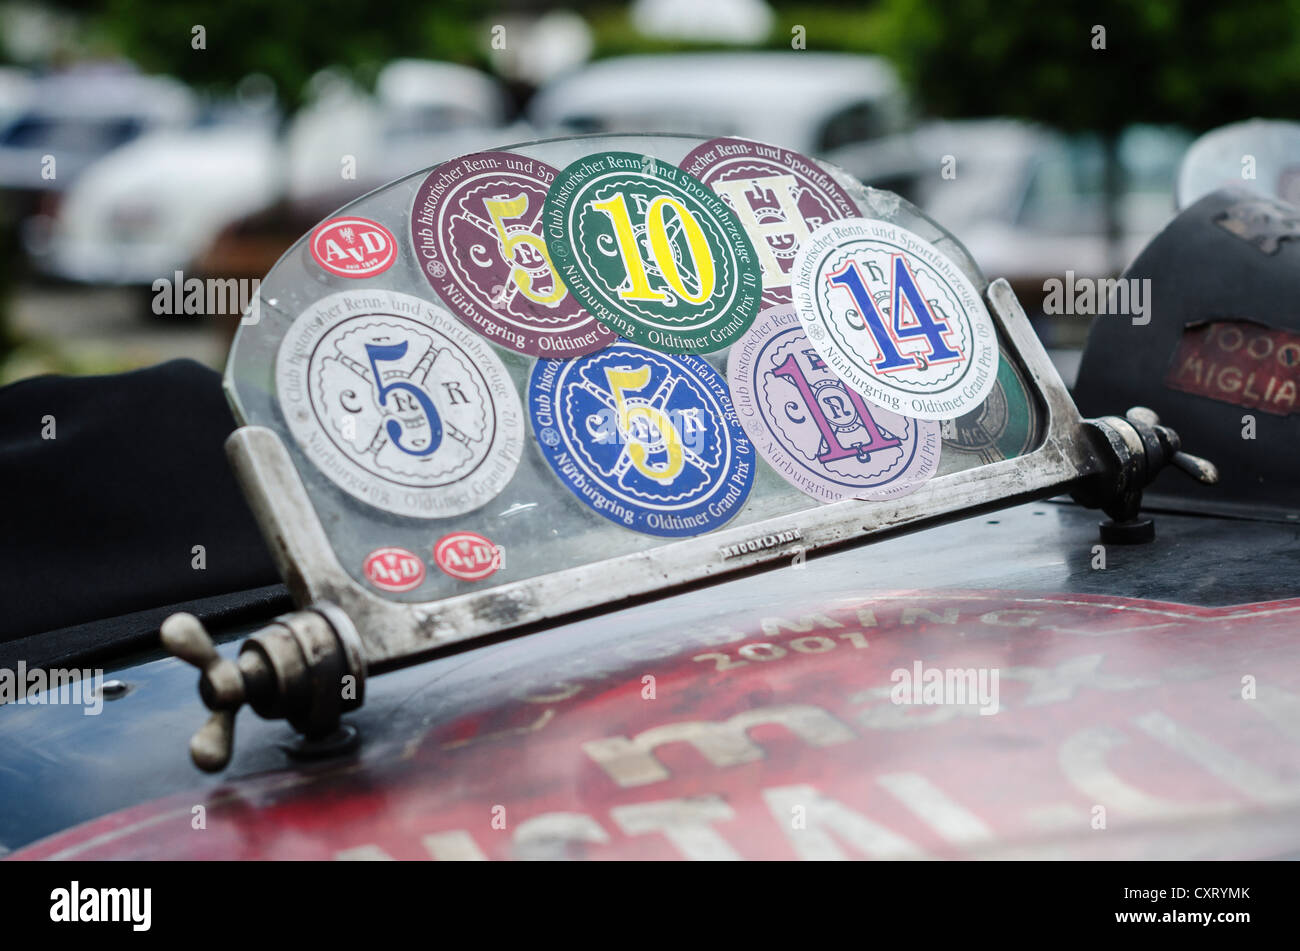 Windshield of a historic race car with stickers, Oldtimer Grand Prix motor race, Nurburgring race track, Germany, - Stock Image